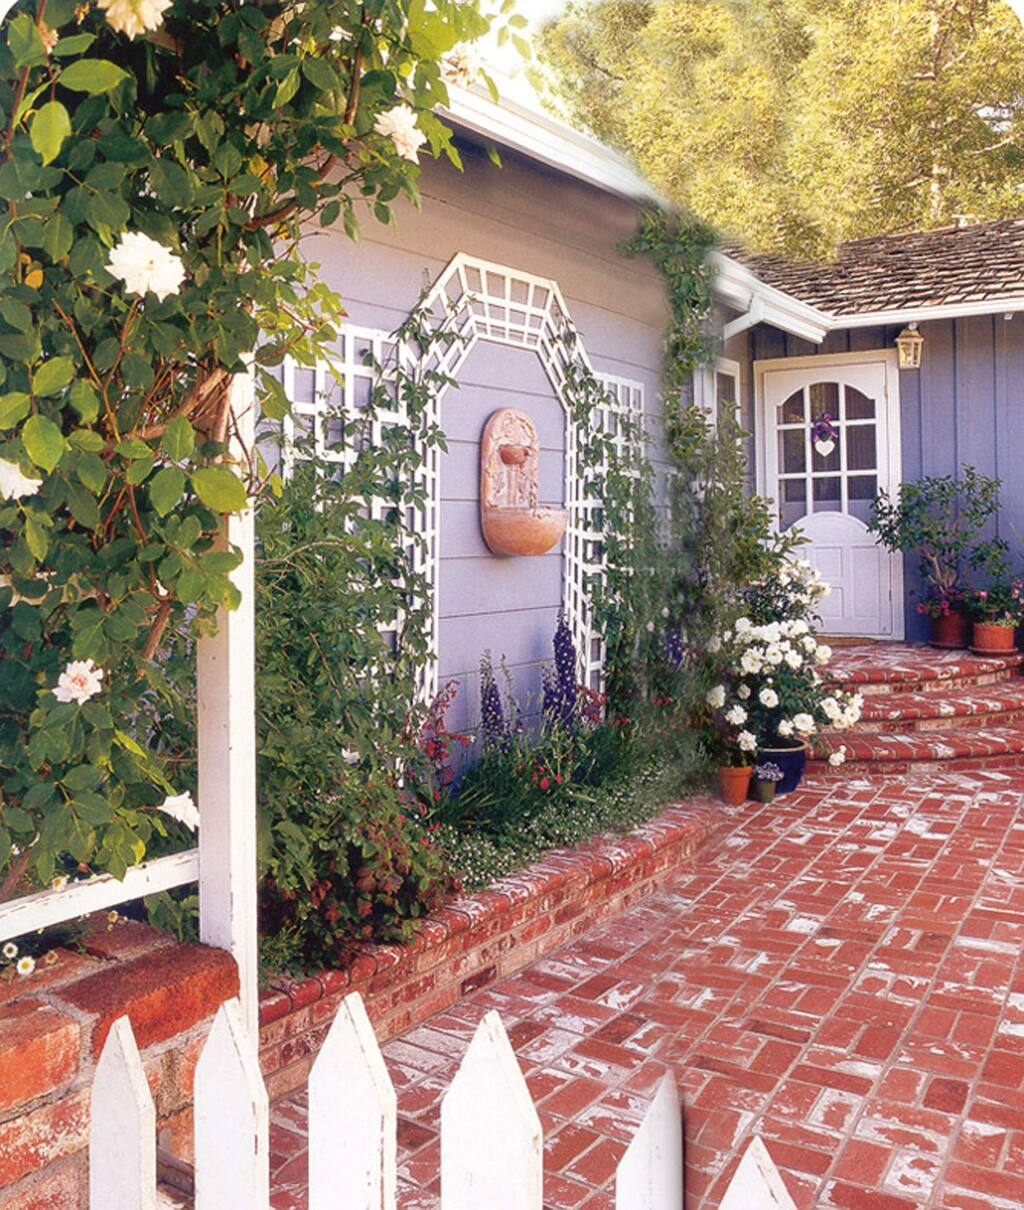 """This home's entrance was transformed from a boring, unadorned walk into an interesting garden by adding wall decorations to the side of the house .Borrowed from the French, this trellising technique called """"tromp l'oeli"""" (meaning 'fool the eye') gives the false impression of a larger, three dimensional space. The fountain in the middle as a focal point adds a sweet sound of trickling water and the whole space is soothing and welcoming. (Louise Leff)"""